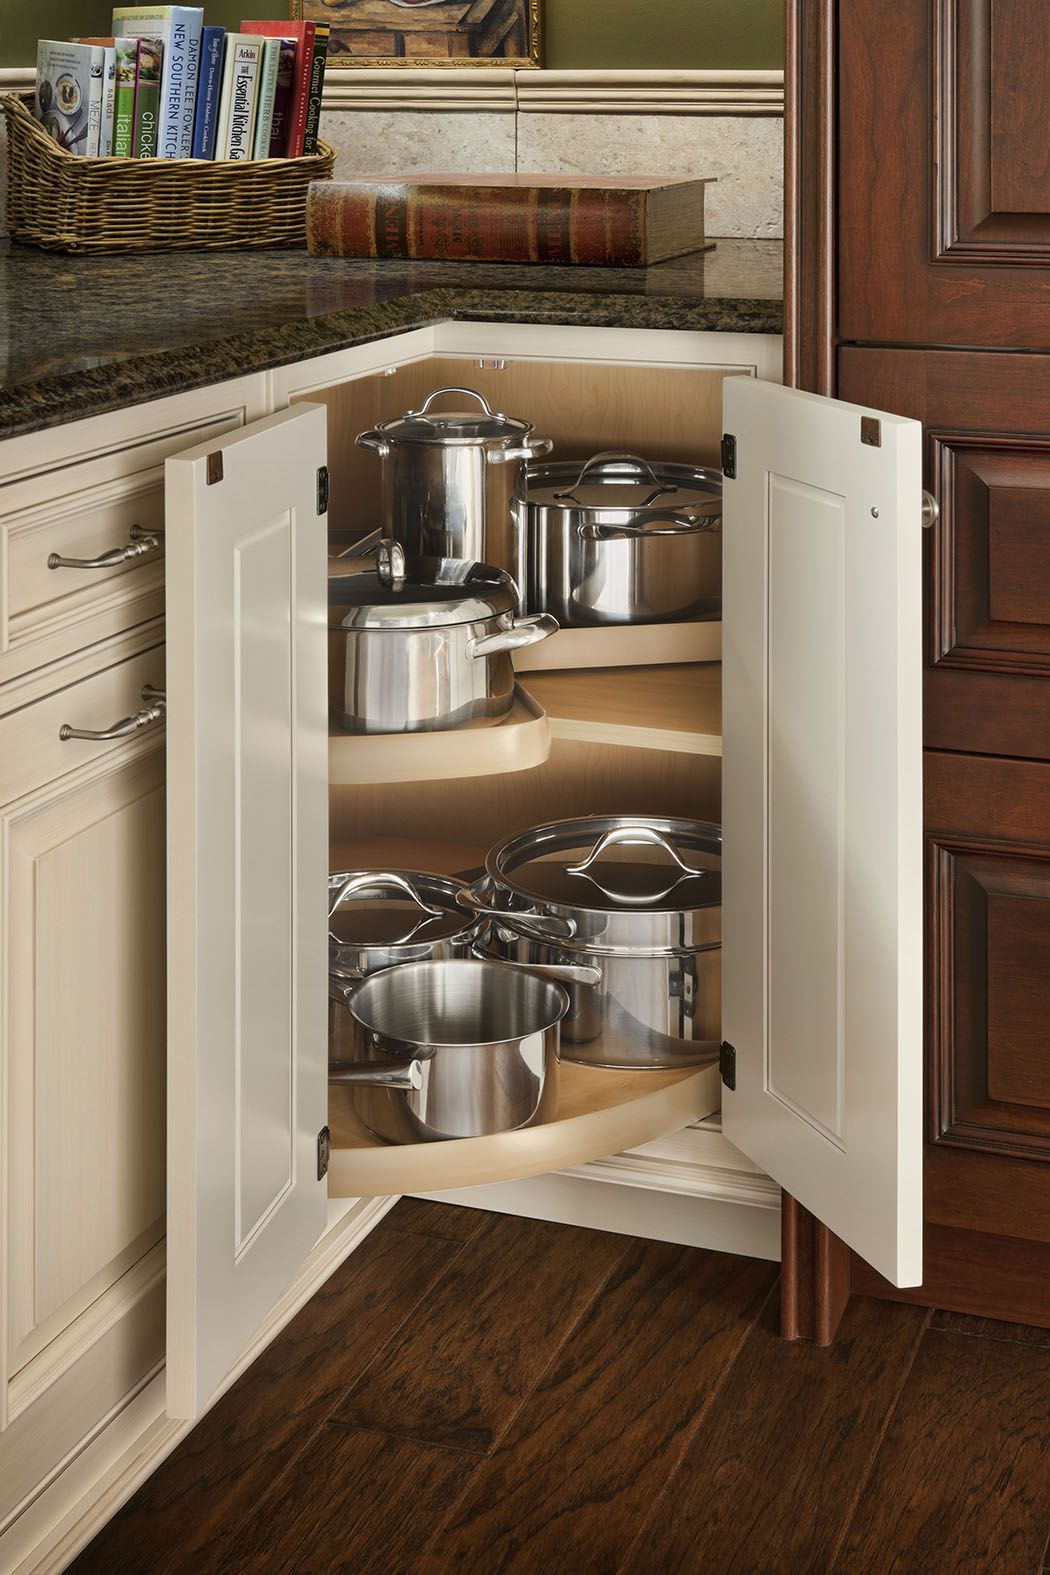 The Third Most Por Interior Storage Feature Requested During Kitchen Updates Is Rotating Shelves Houzz Designtrend Woodmode